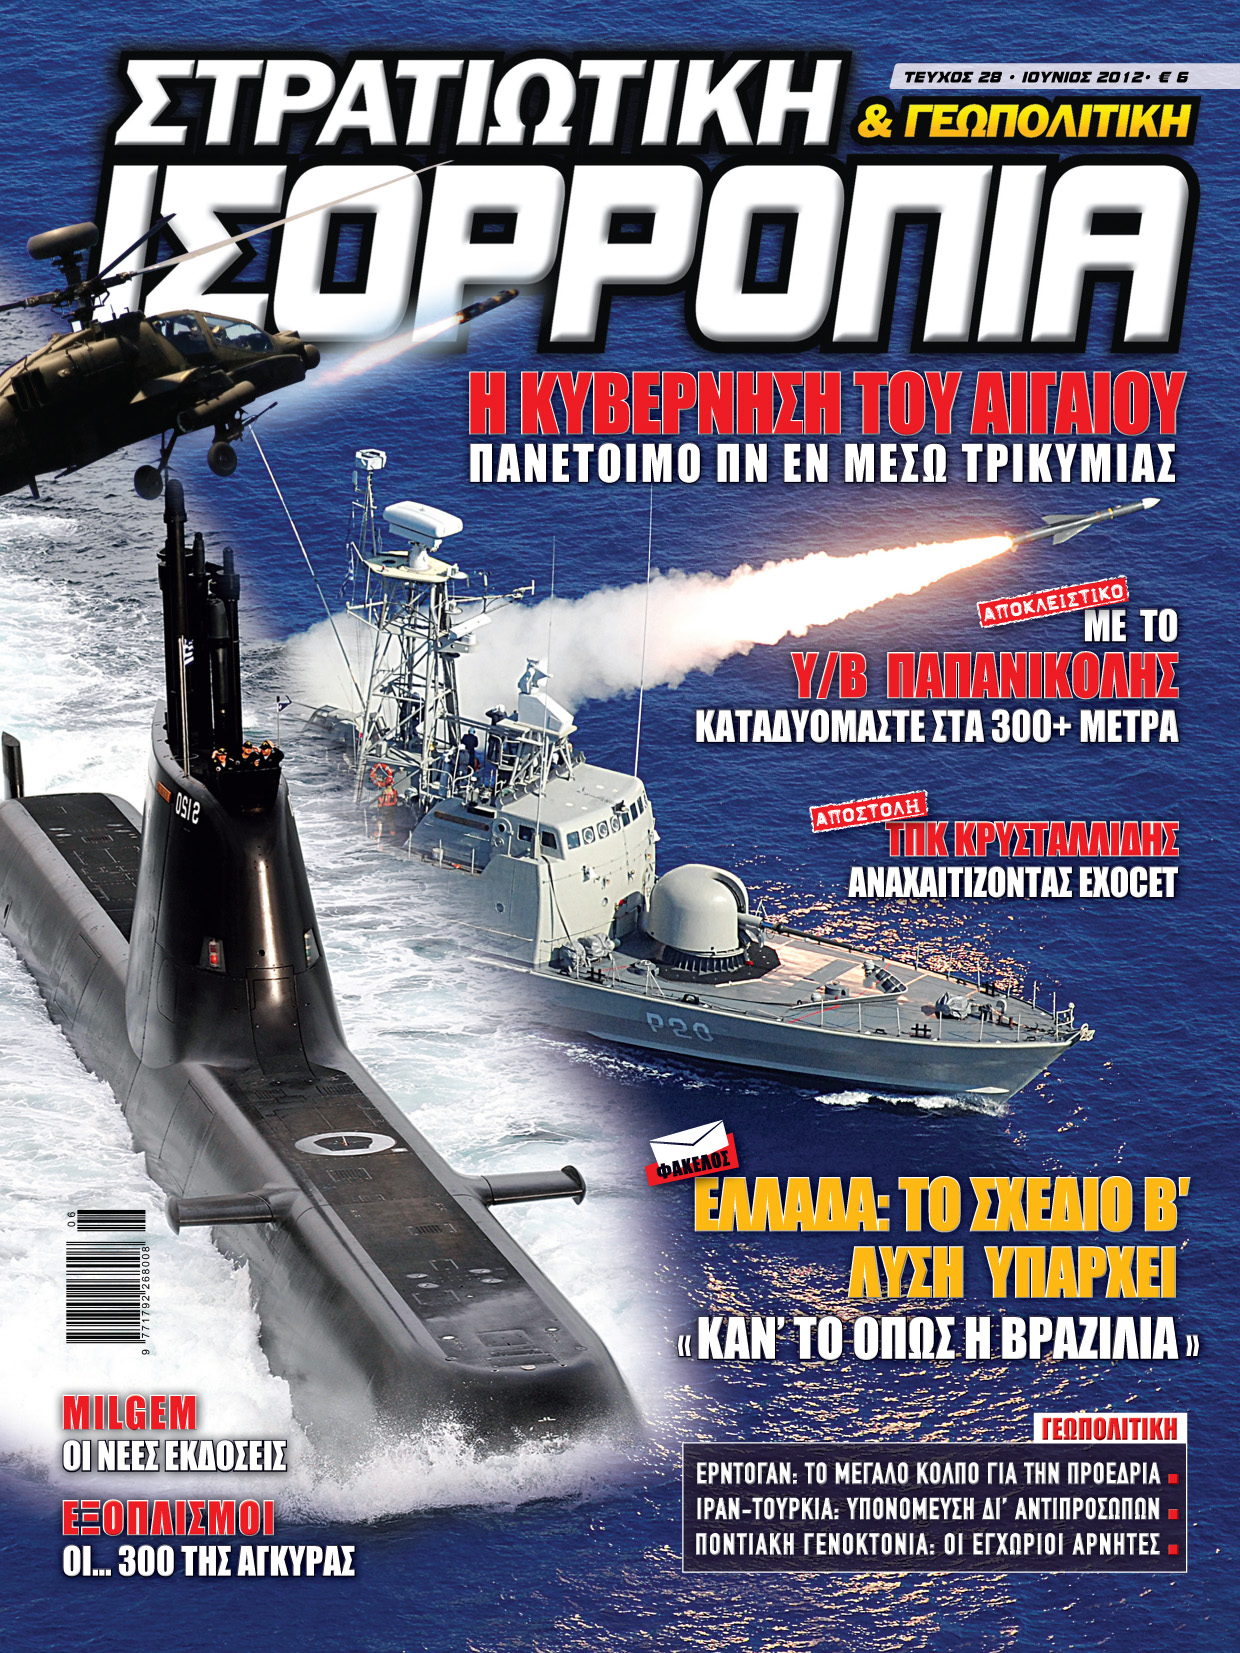 https://i1.wp.com/www.defence-point.gr/news/wp-content/uploads/2012/06/IS28_COVER.jpg